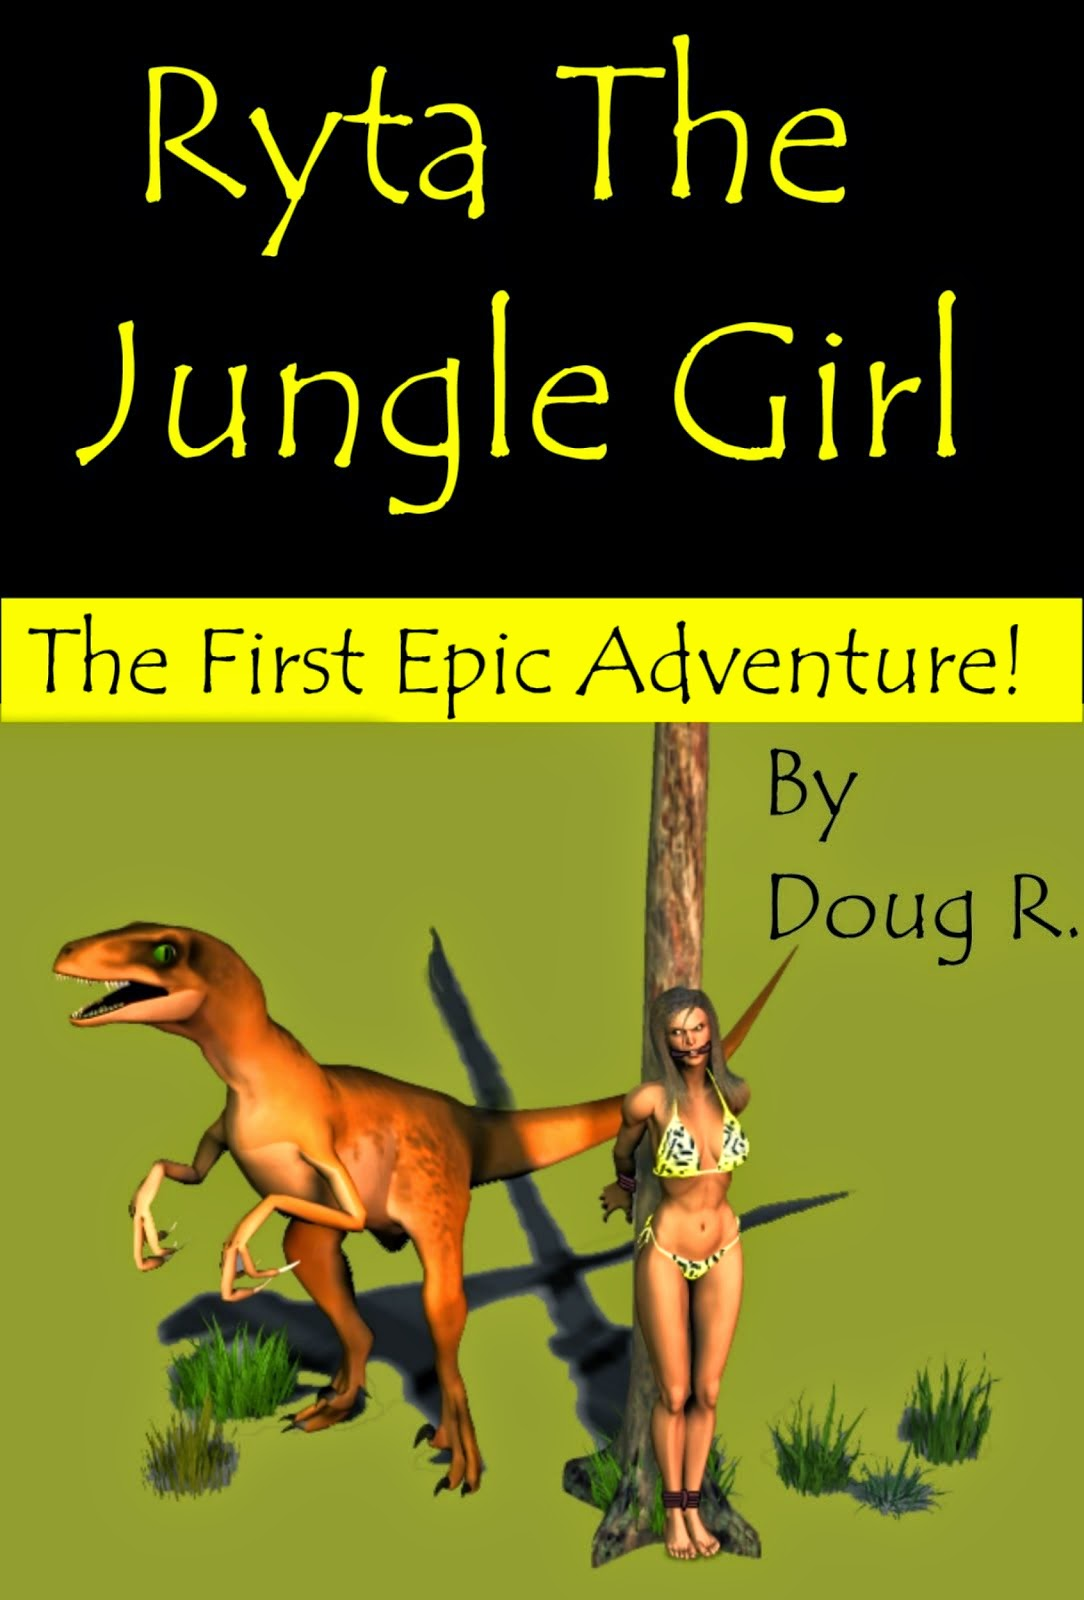 Ryta The Jungle girl